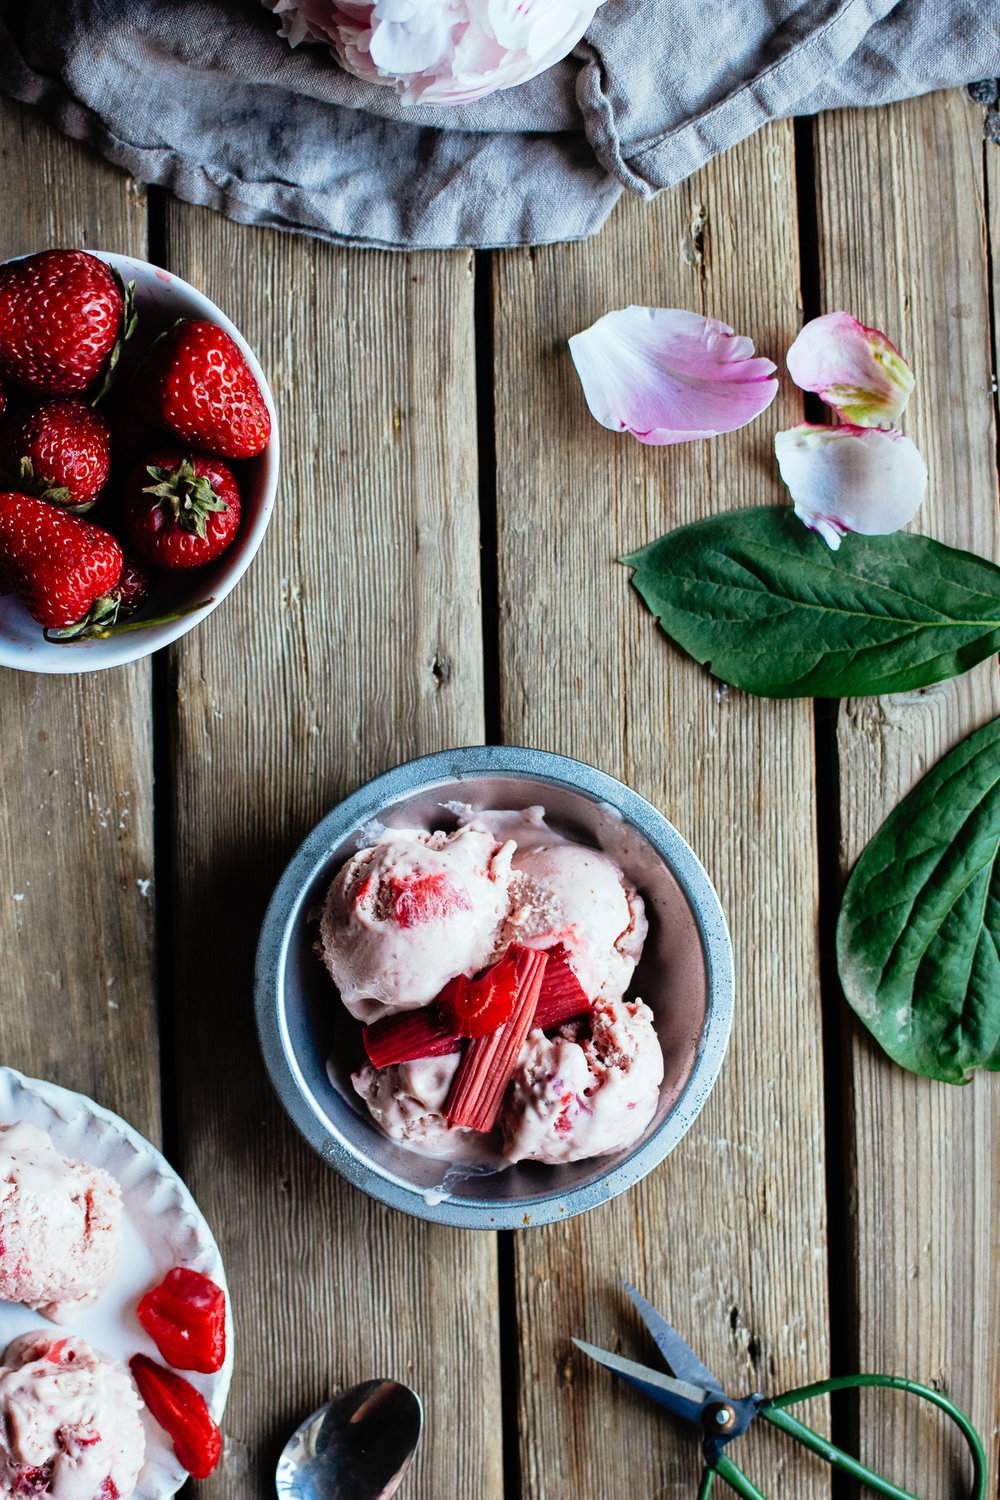 strawberryrhubarbicecream_thefarmersdaughter-21.jpg